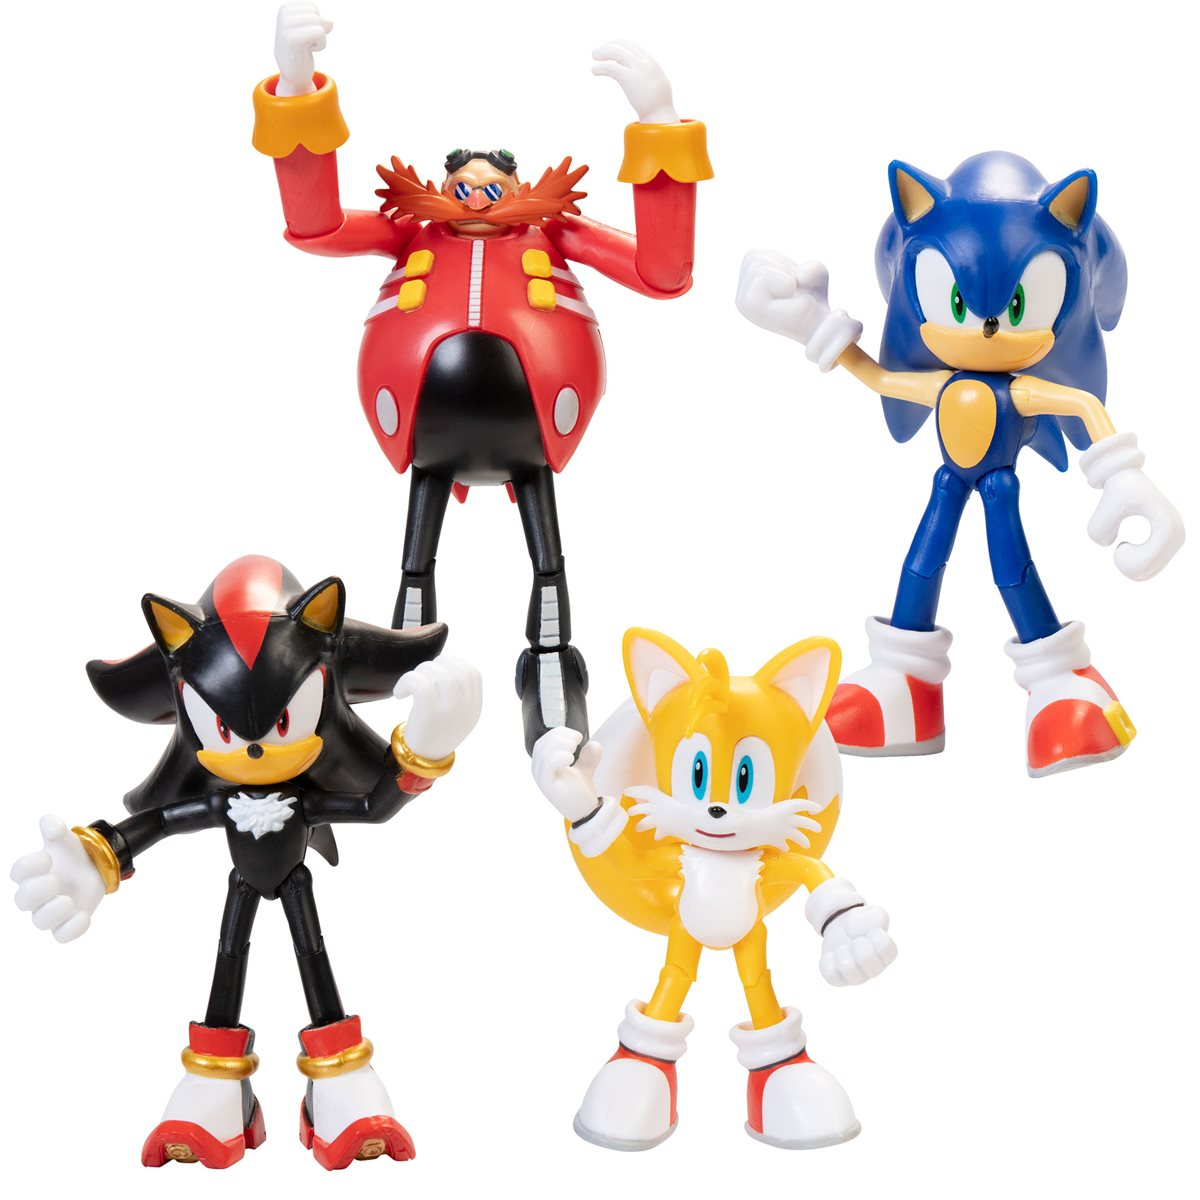 Sonic The Hedgehog 4 Inch Action Figure With Accessory Wave 1 Case Entertainment Earth